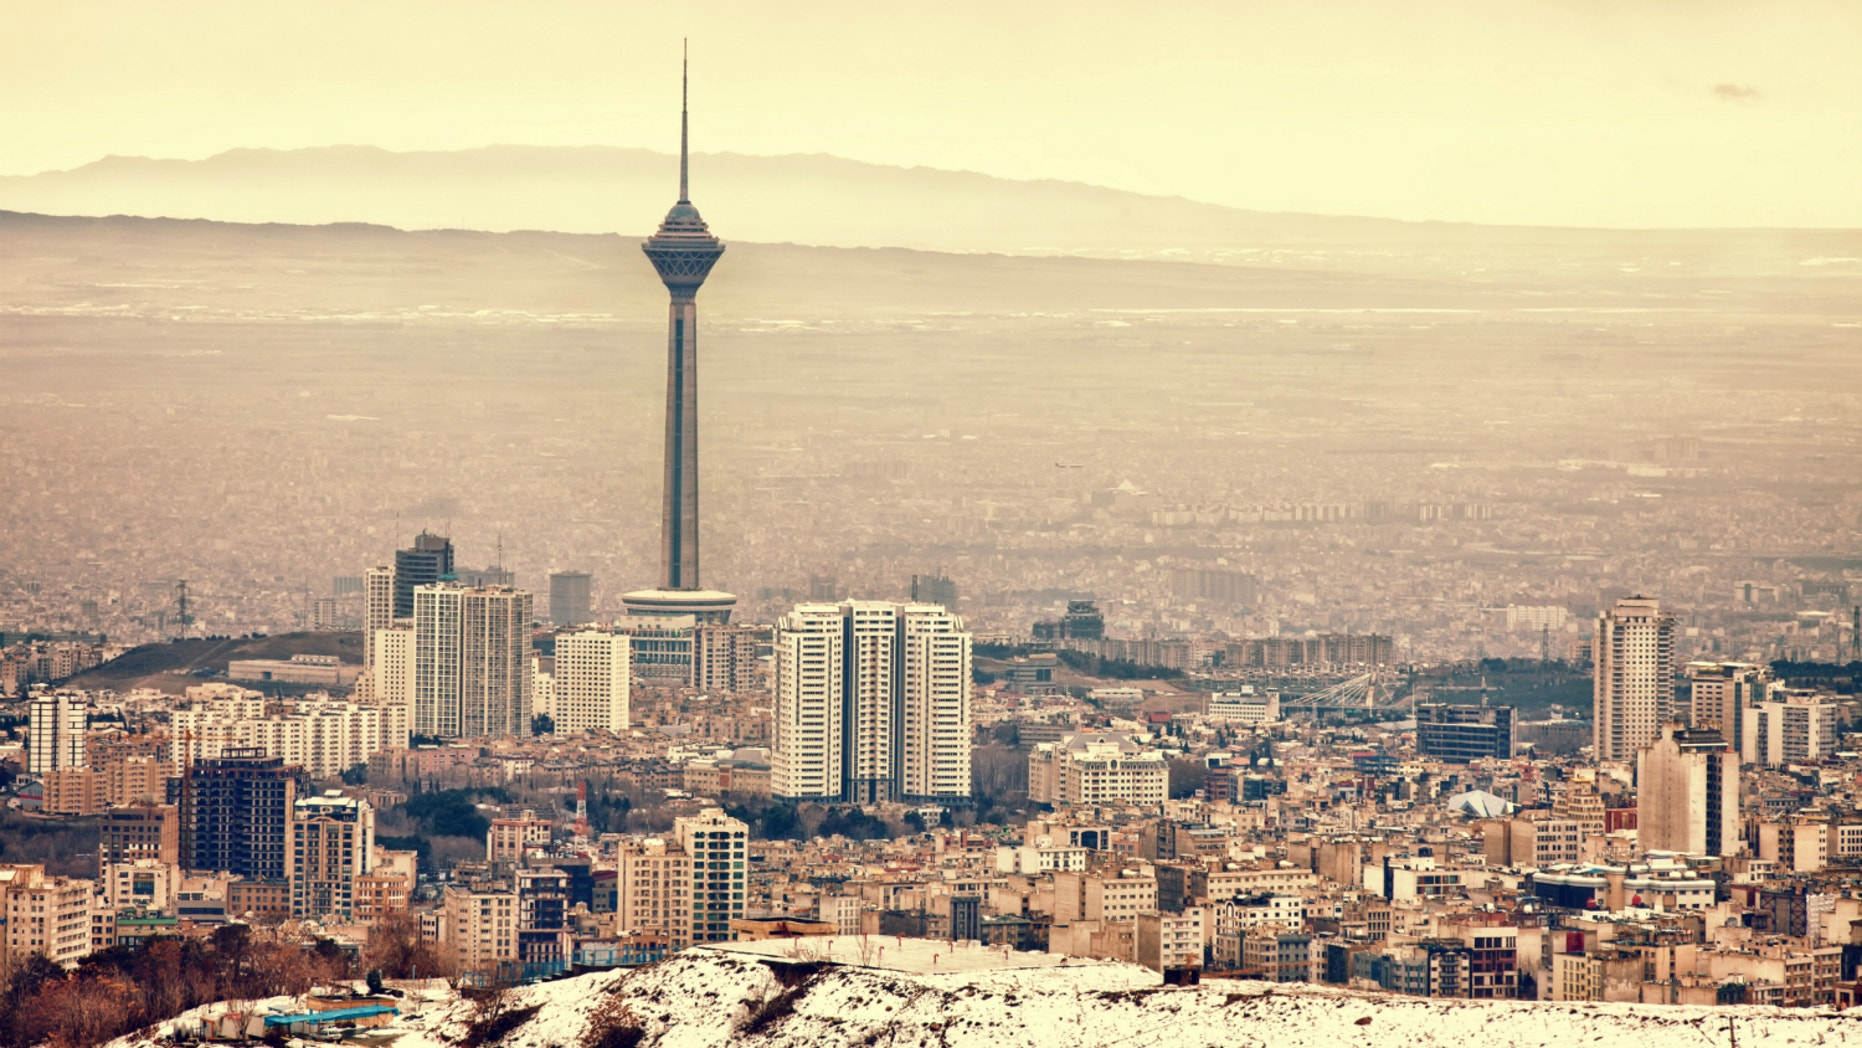 As groundwater drains from rock under Tehran, the city is paying a steep price.